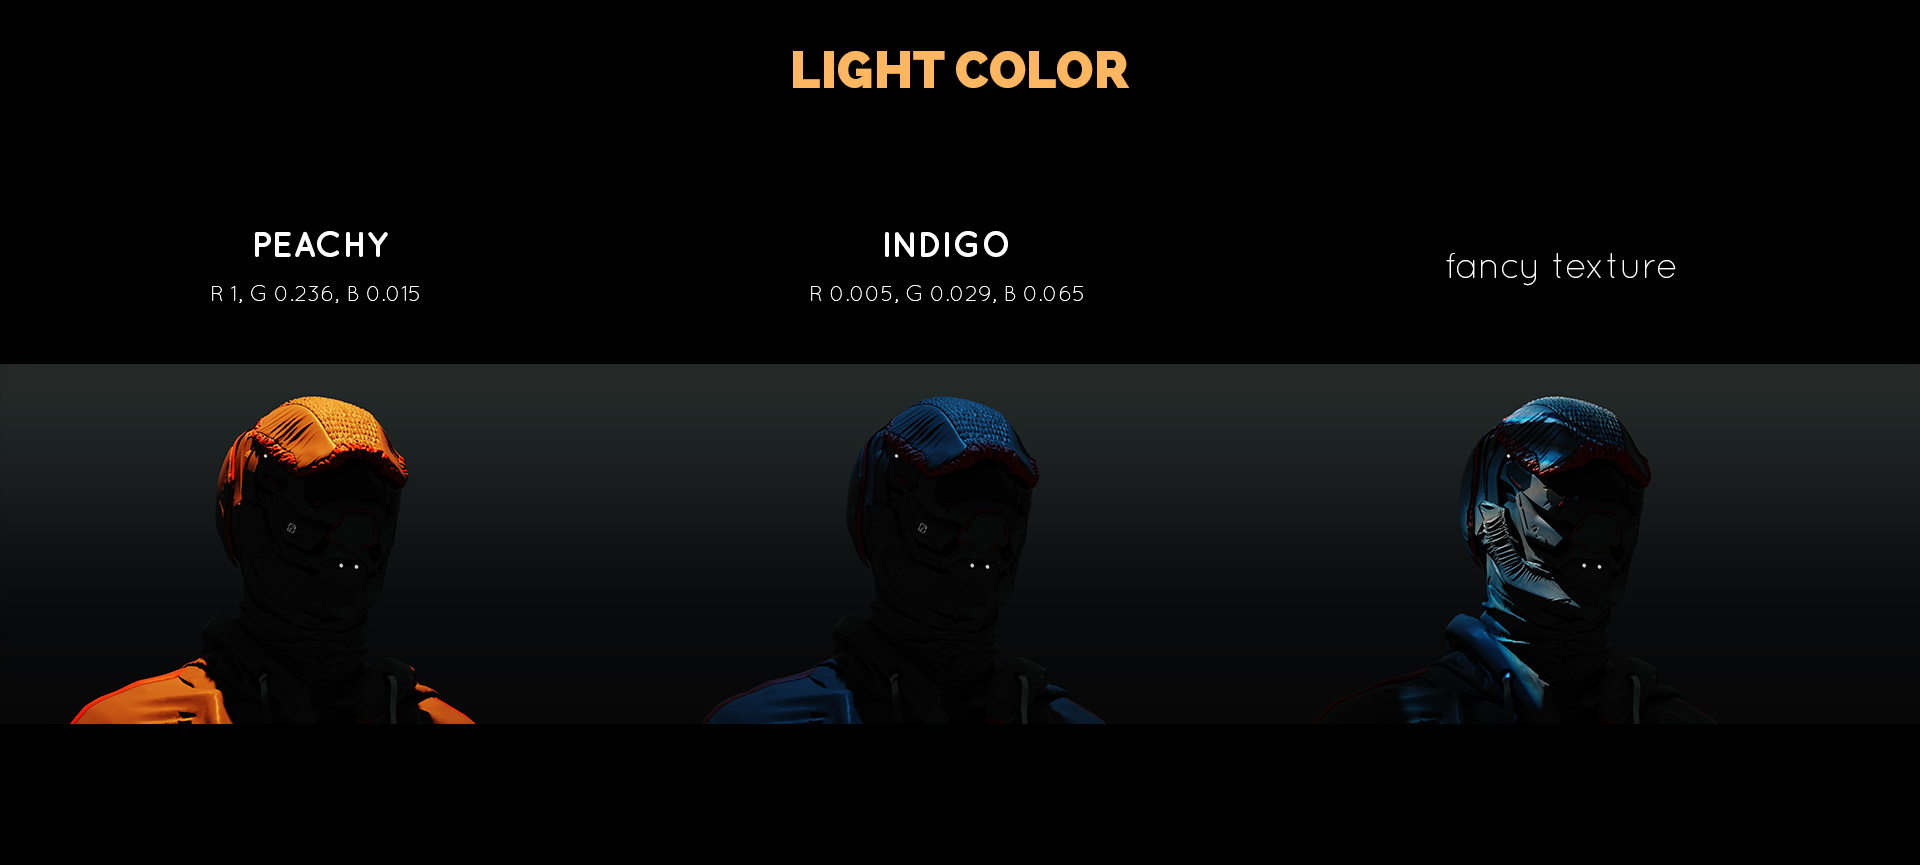 light color - lighting tutorial